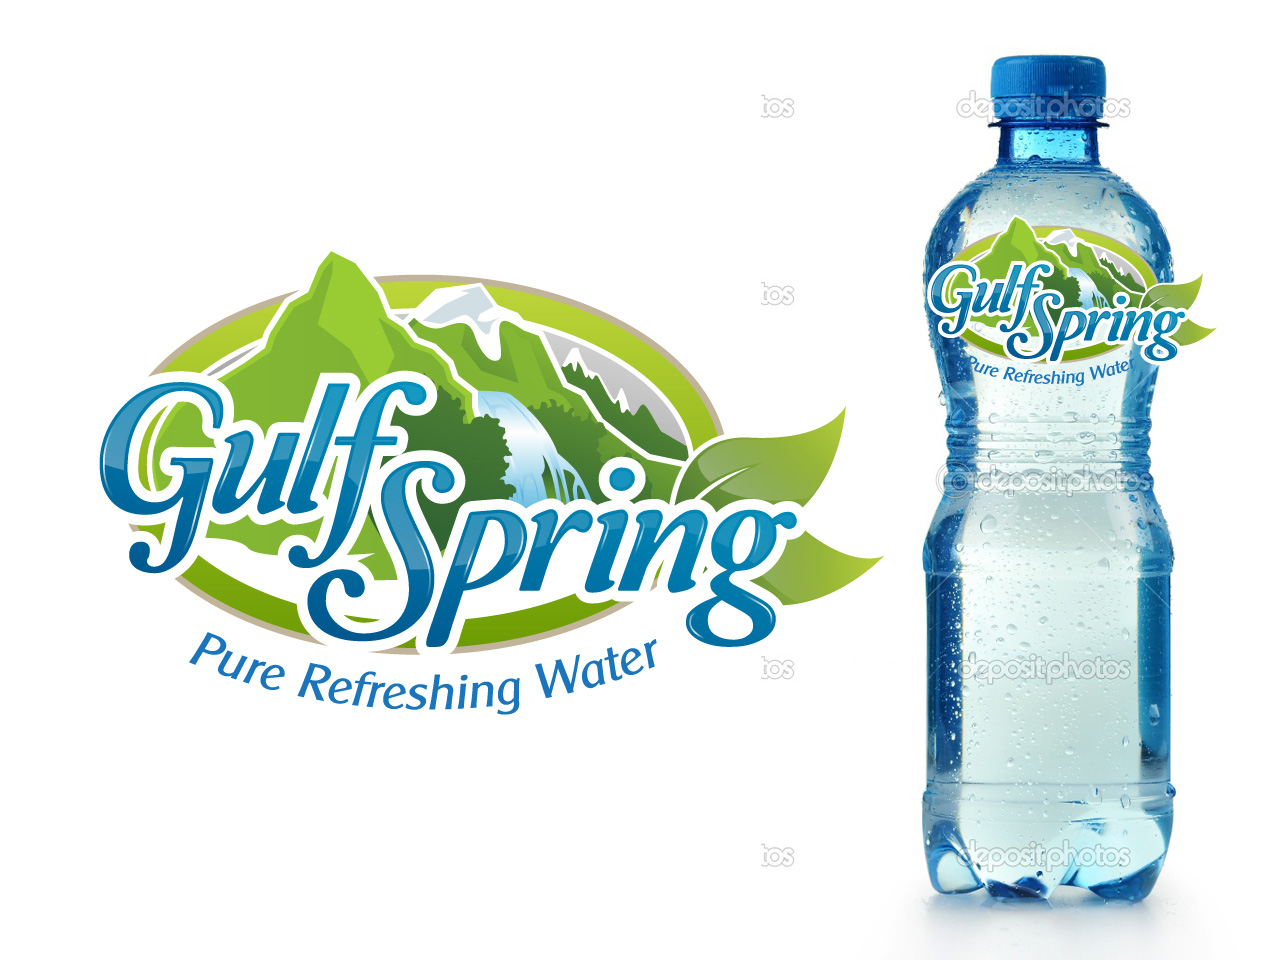 Logo Design by jpbituin - Entry No. 65 in the Logo Design Contest Inspiring Logo Design for Gulf Spring.